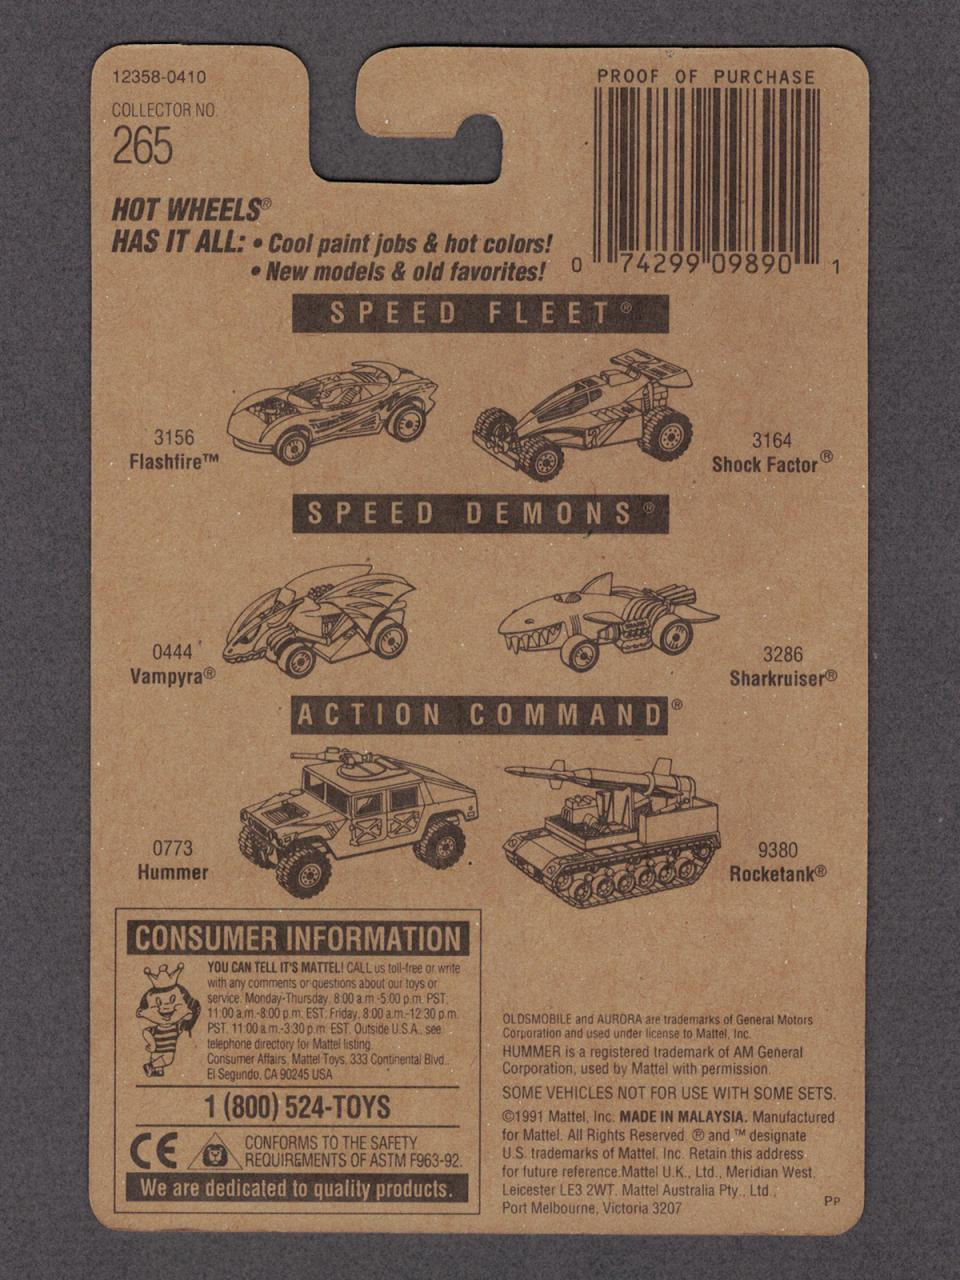 1994 Hot Wheels Oldsmobile Aurora on #265 Collector Card